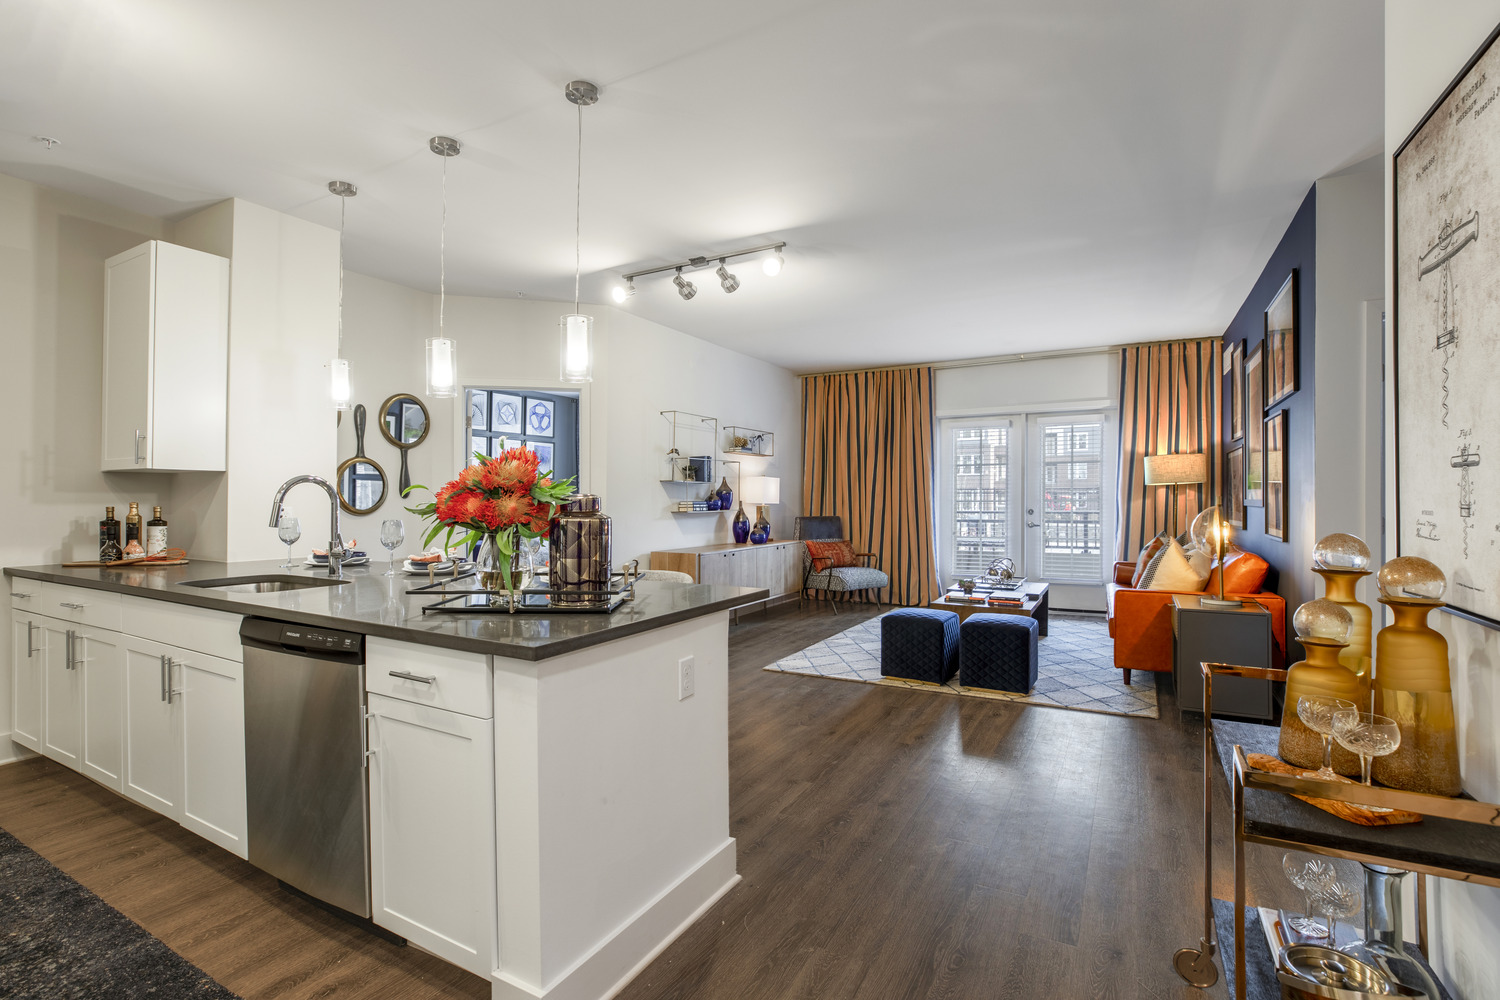 CBG builds J Creekside at Exton, a 291-Unit Luxury Community Across Four Buildings in Exton, PA - Image #2